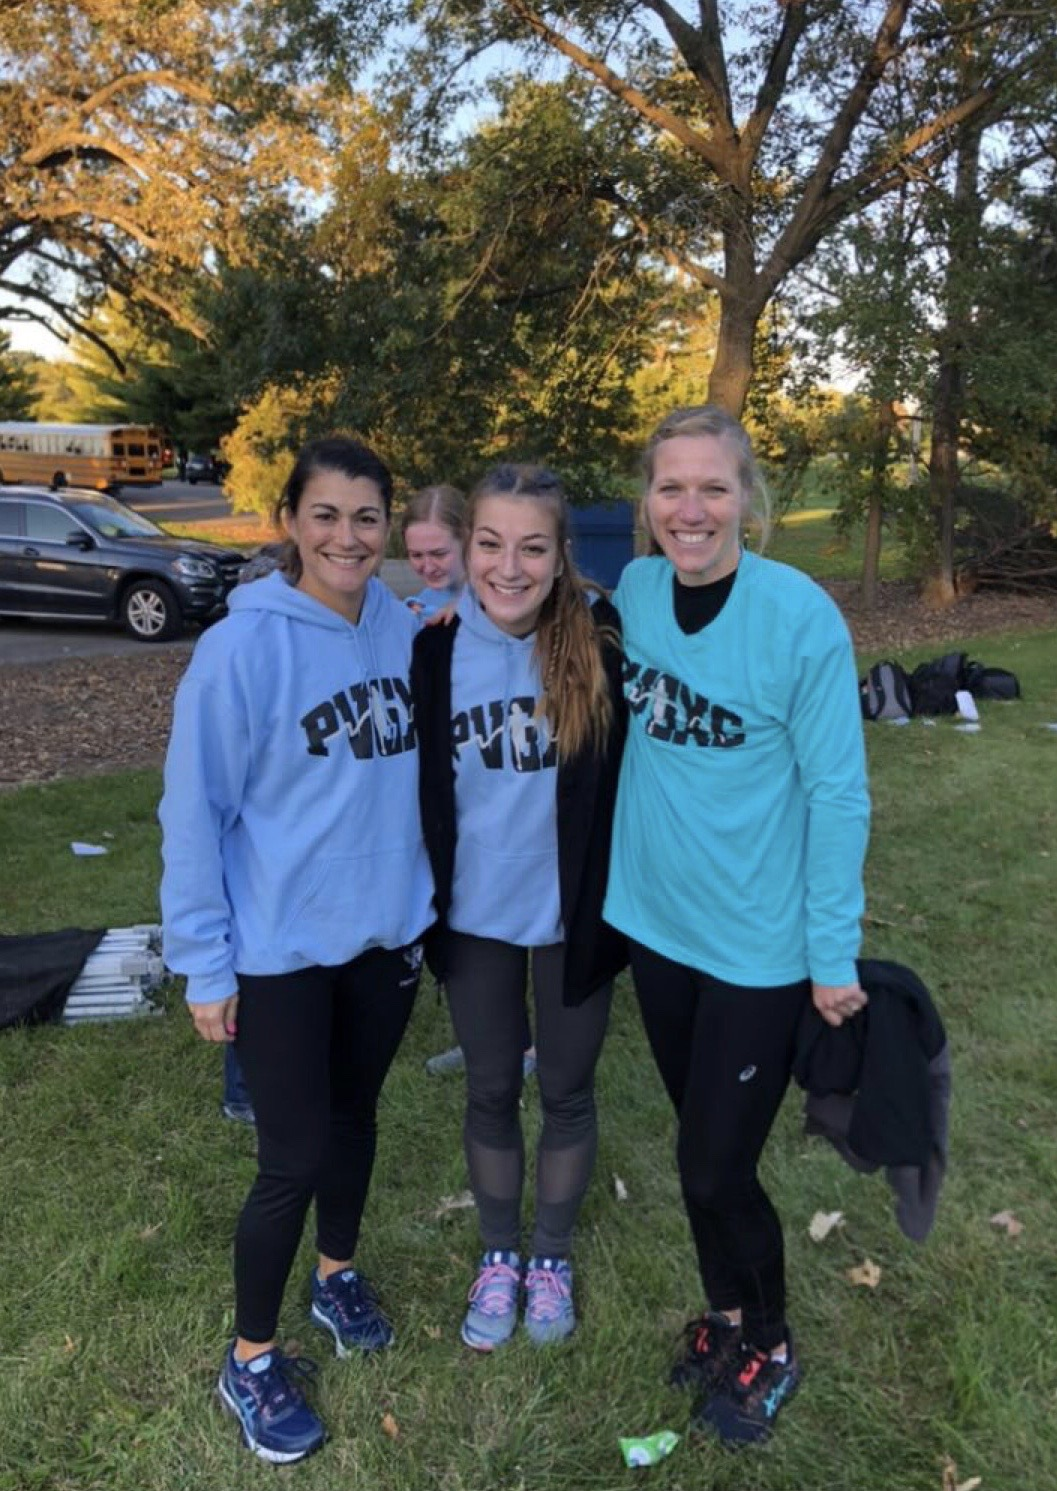 Senior Clare Basala stands amongst her female cross country coaches who have taught her about self-acceptance in the sport of running.